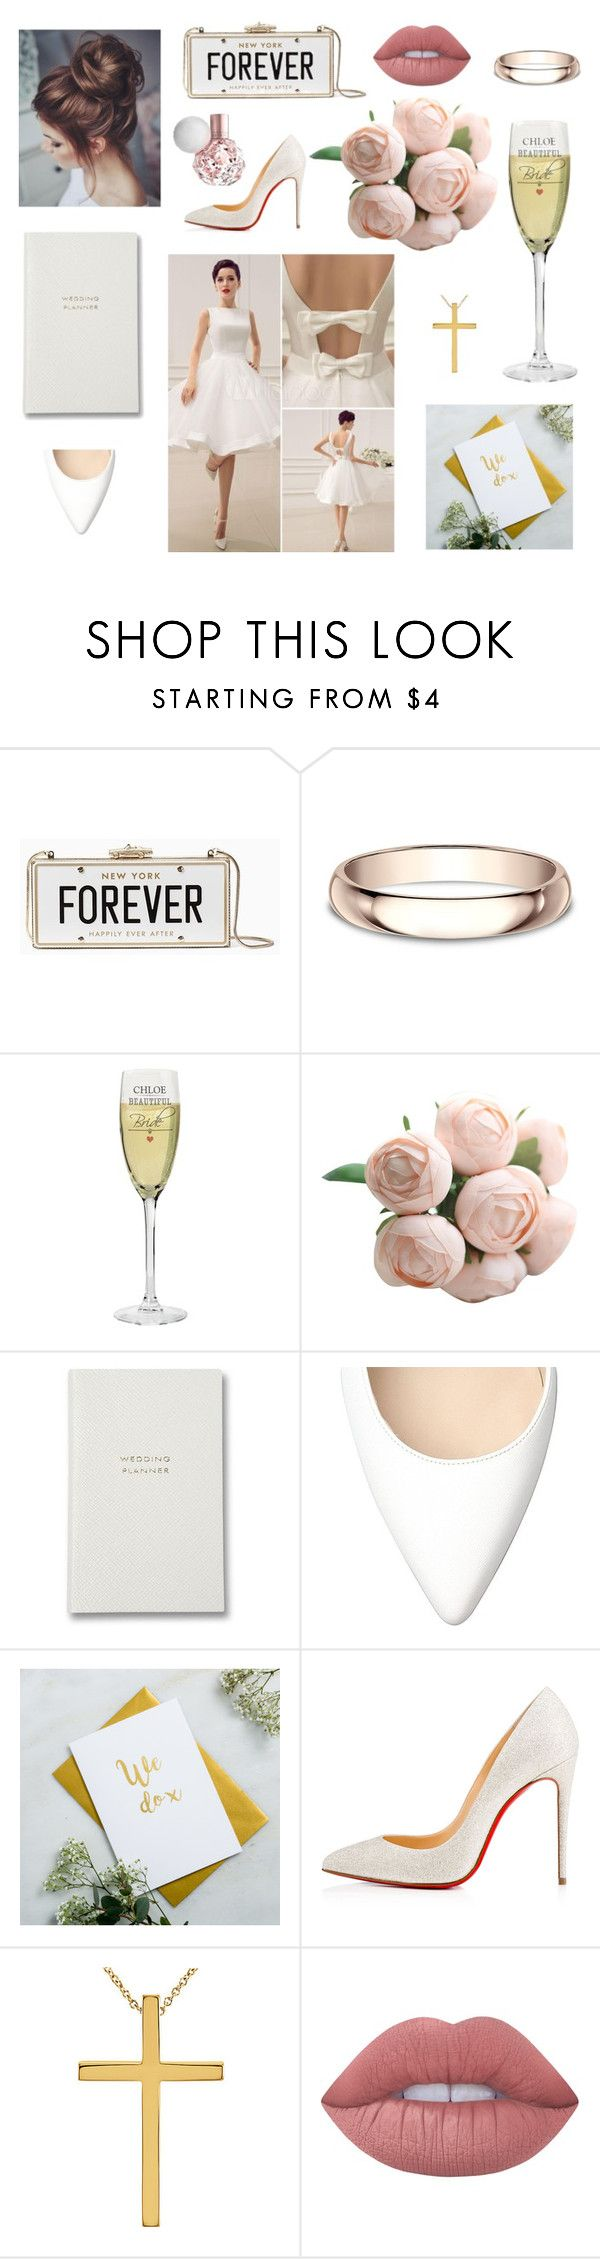 """Wstępna stylizacja do ślubu. Przygotowania czas zacząć."" by sweetlittlebunny on Polyvore featuring moda, Kate Spade, Modern Bride, Posh Totty Designs, Christian Louboutin i Lime Crime"